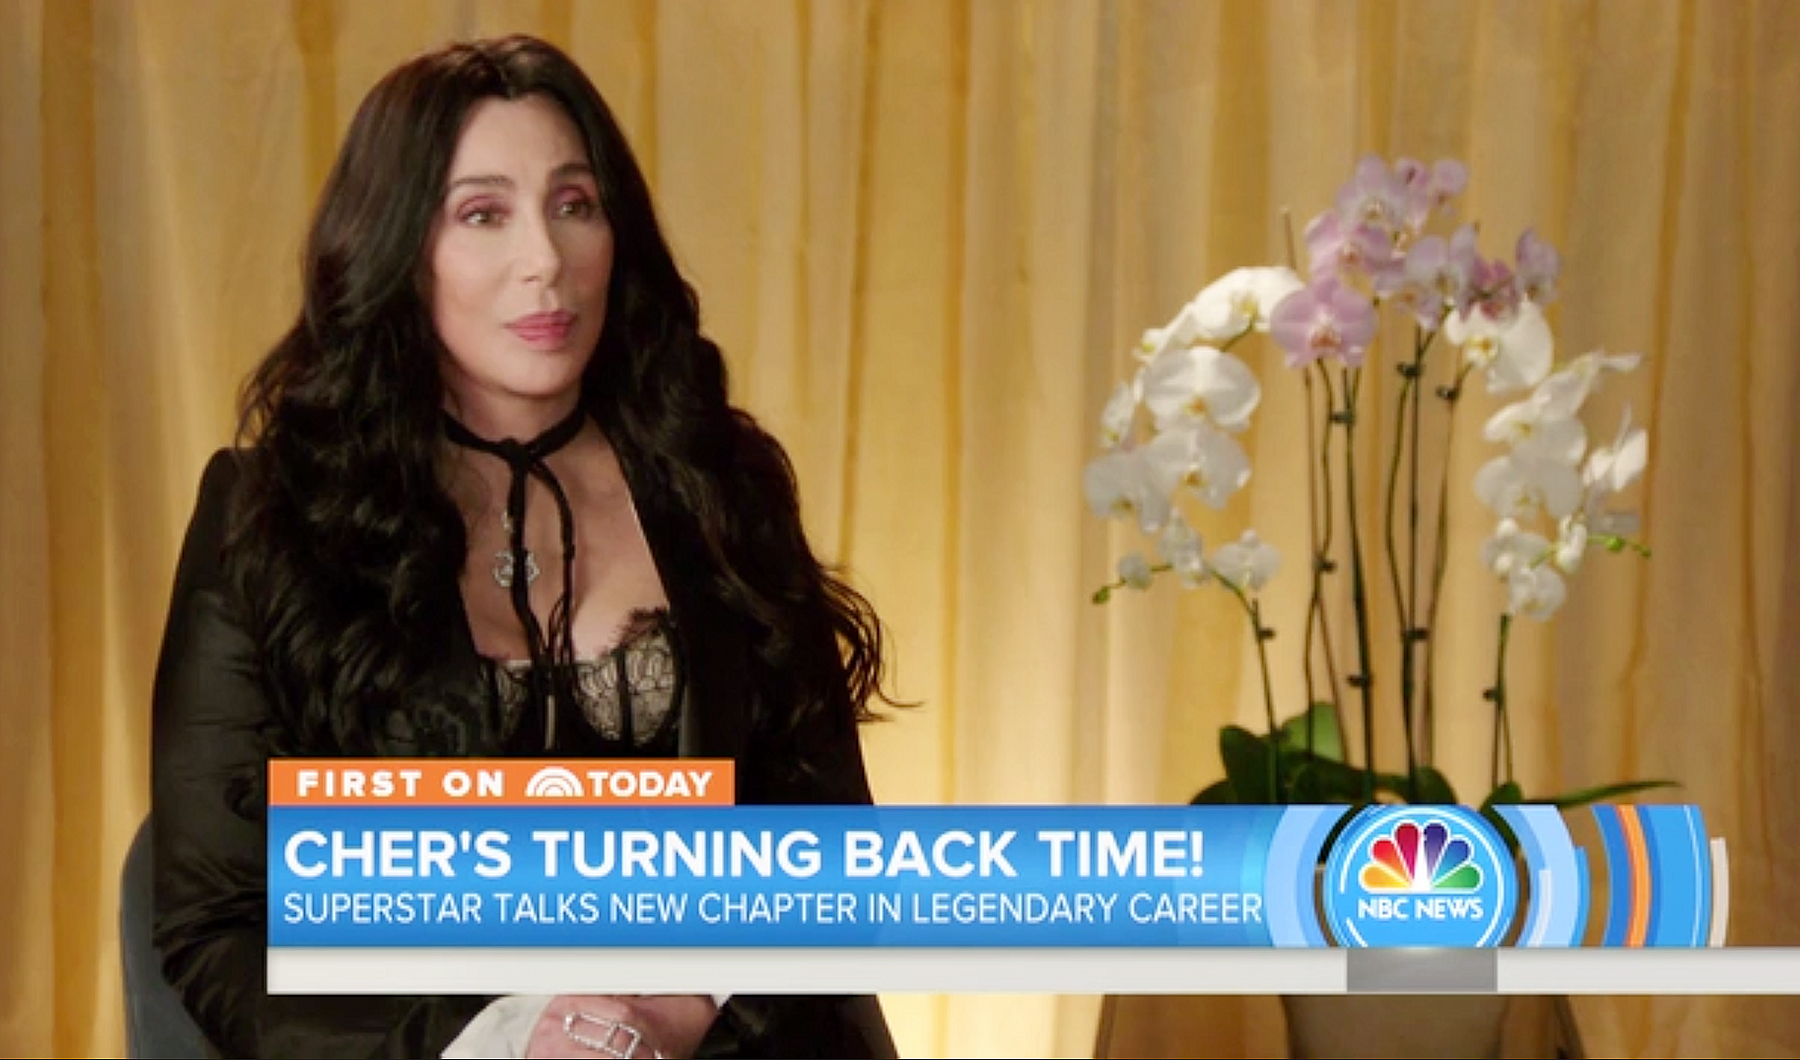 Cher Today show